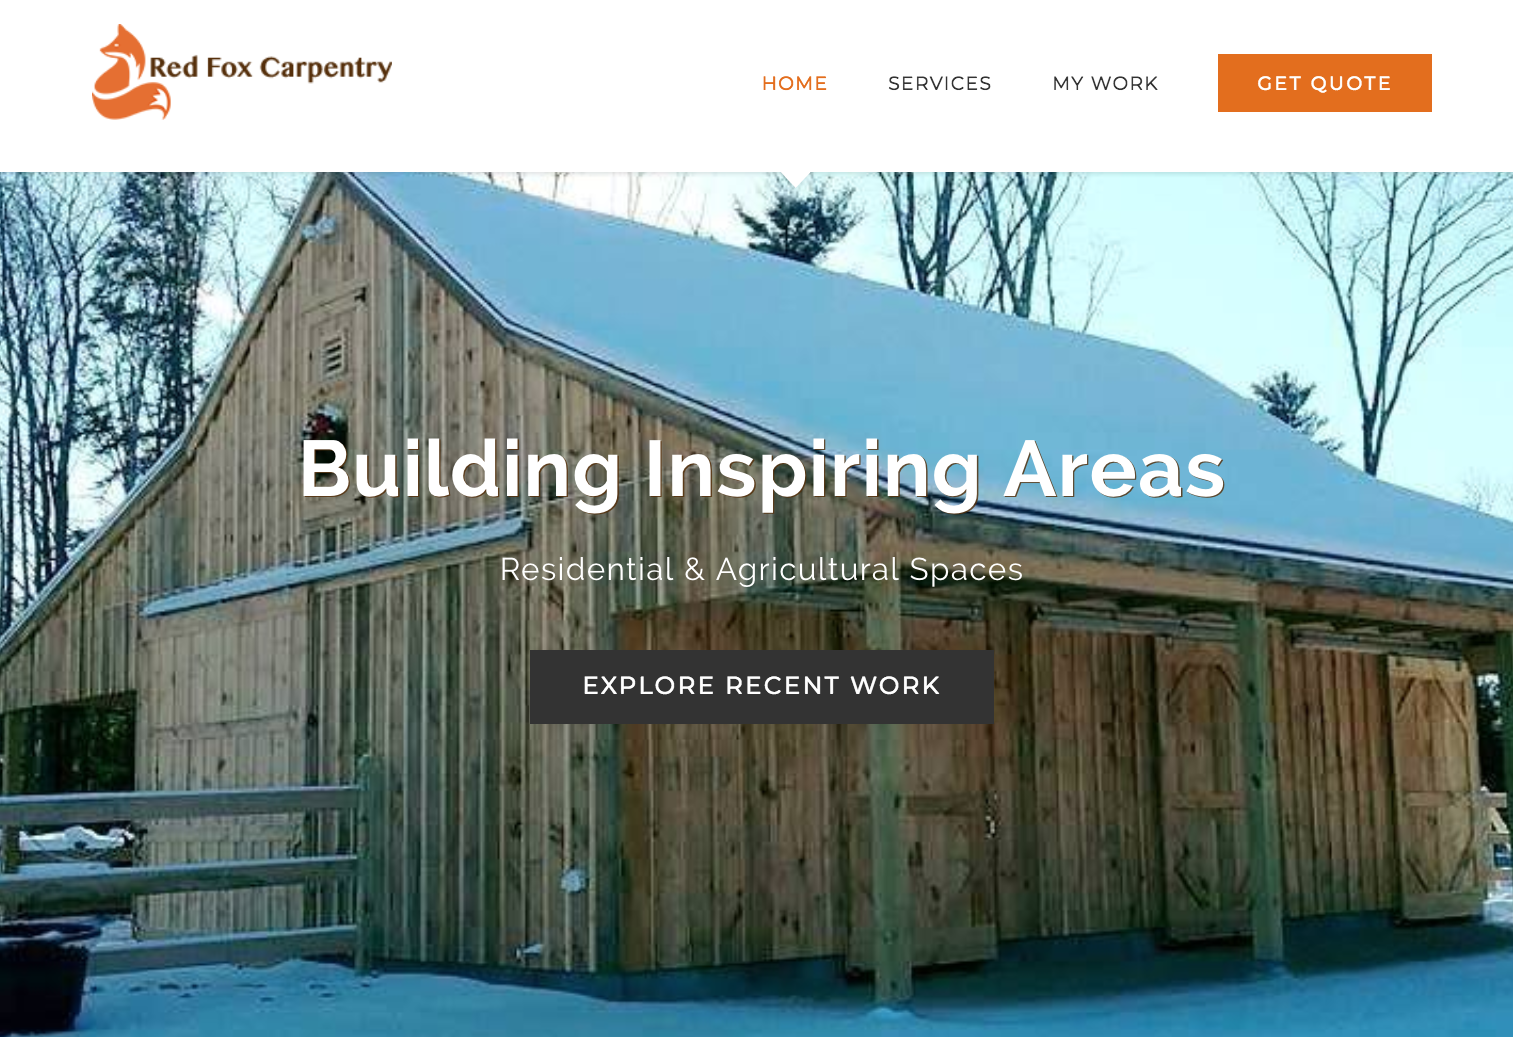 Red Fox Carpentry